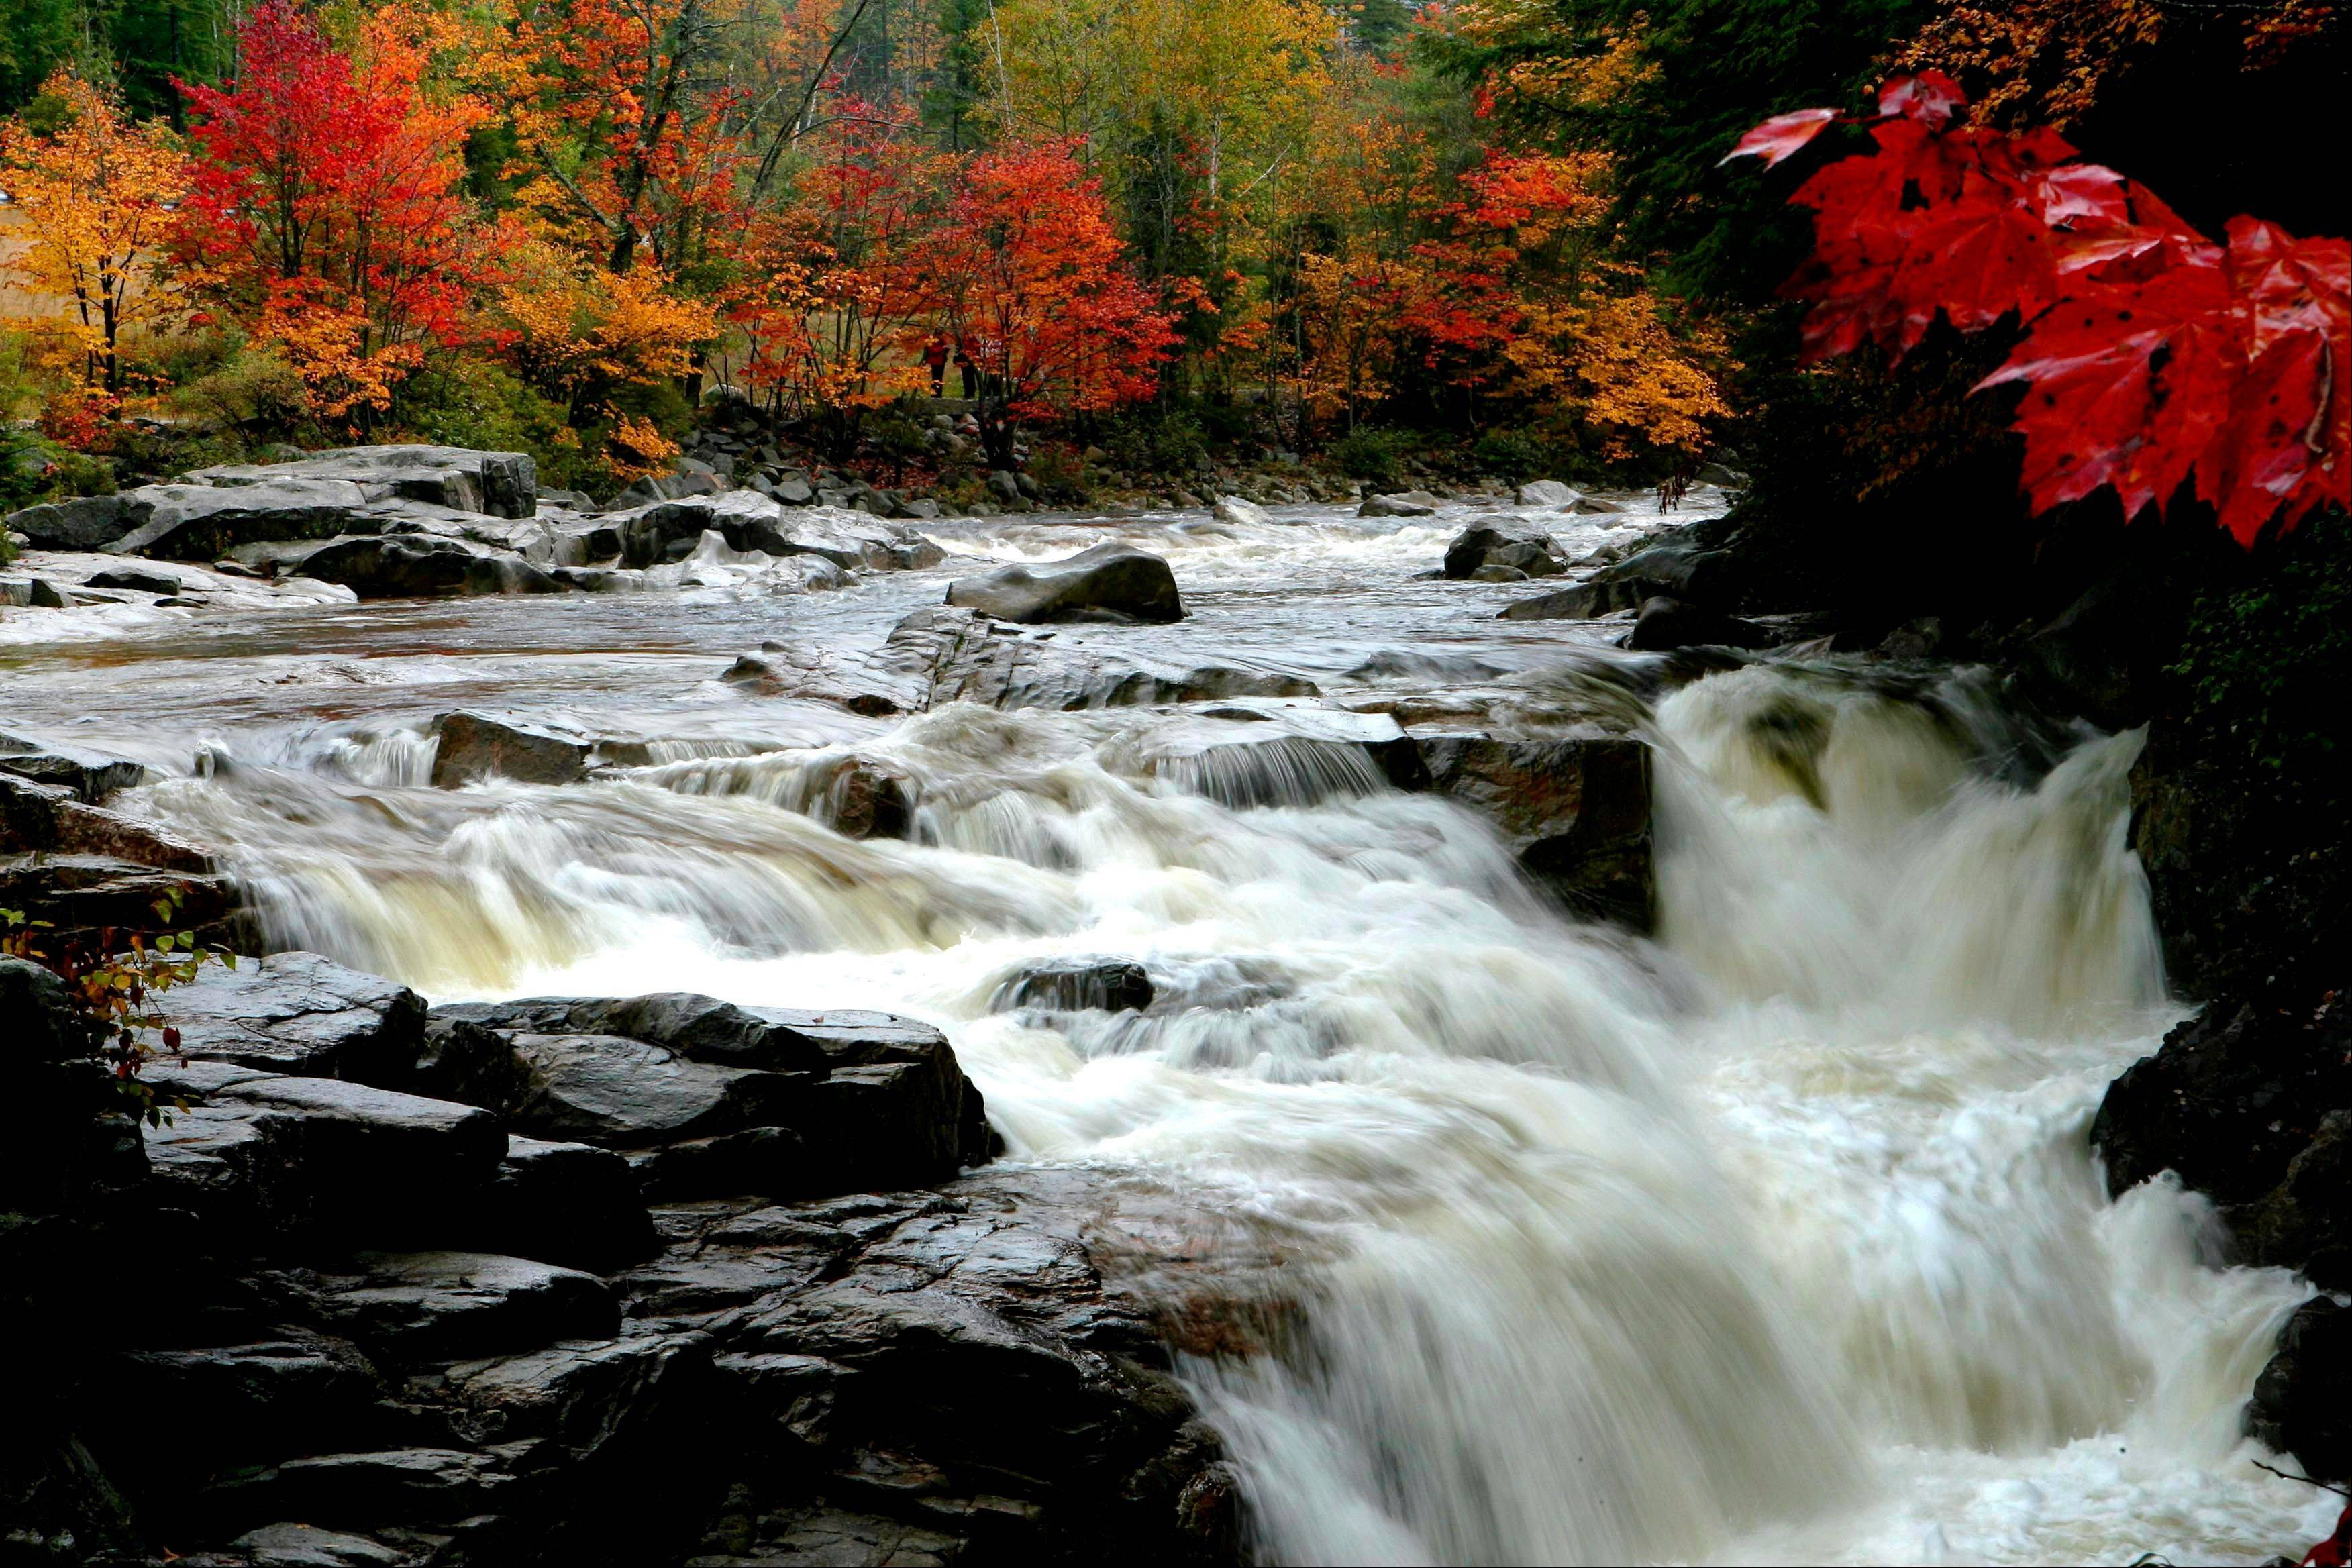 Leaves begin to change color along the Swift River off the Kancamagus Highway in Albany, N.H. The scenic highway goes through the White Mountain National Forest.